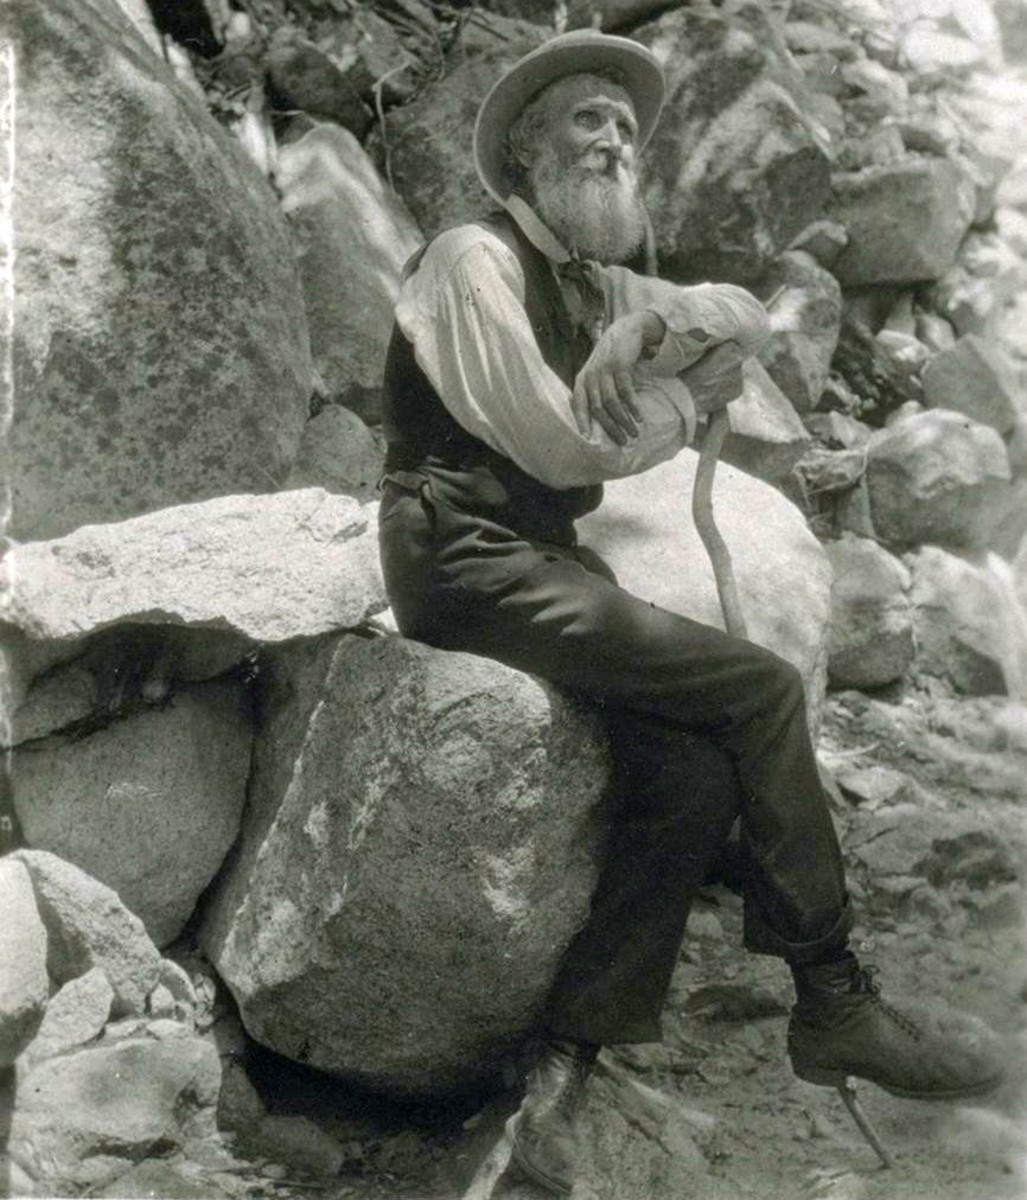 American conservationist John Muir photographed in 1907.